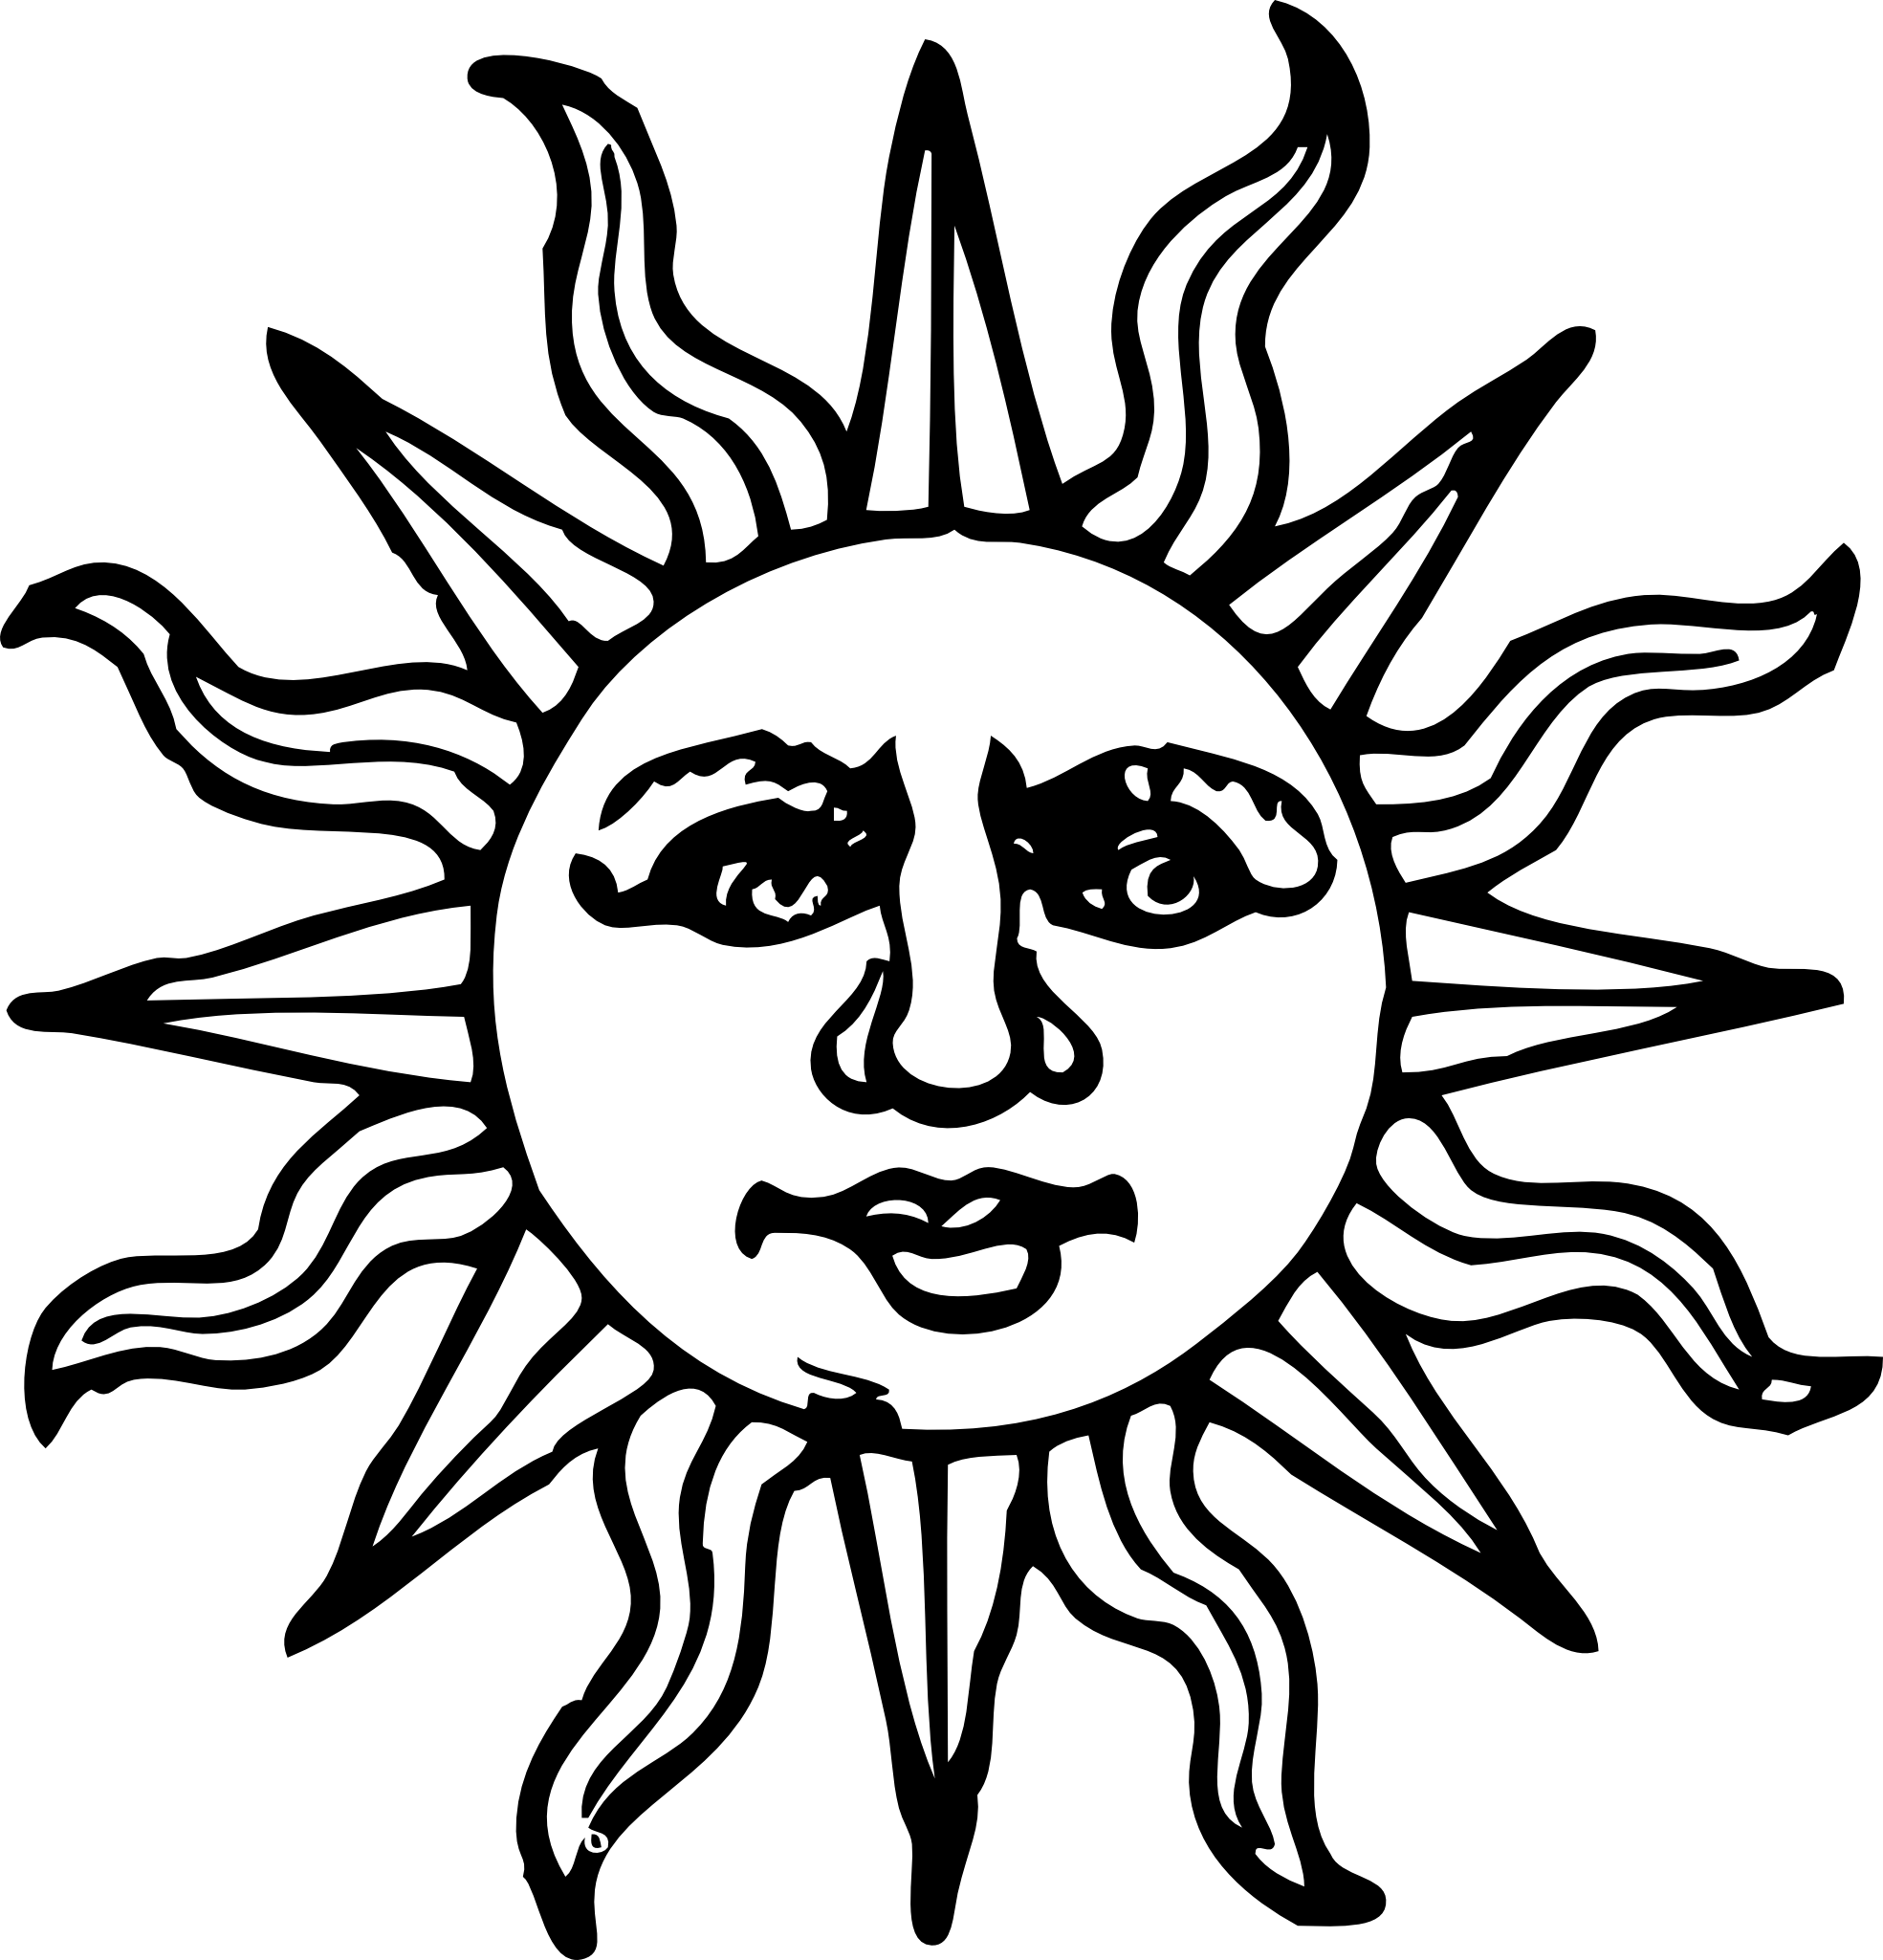 Clipart outline of sun svg black and white Sun Drawing Black And White at GetDrawings.com | Free for personal ... svg black and white